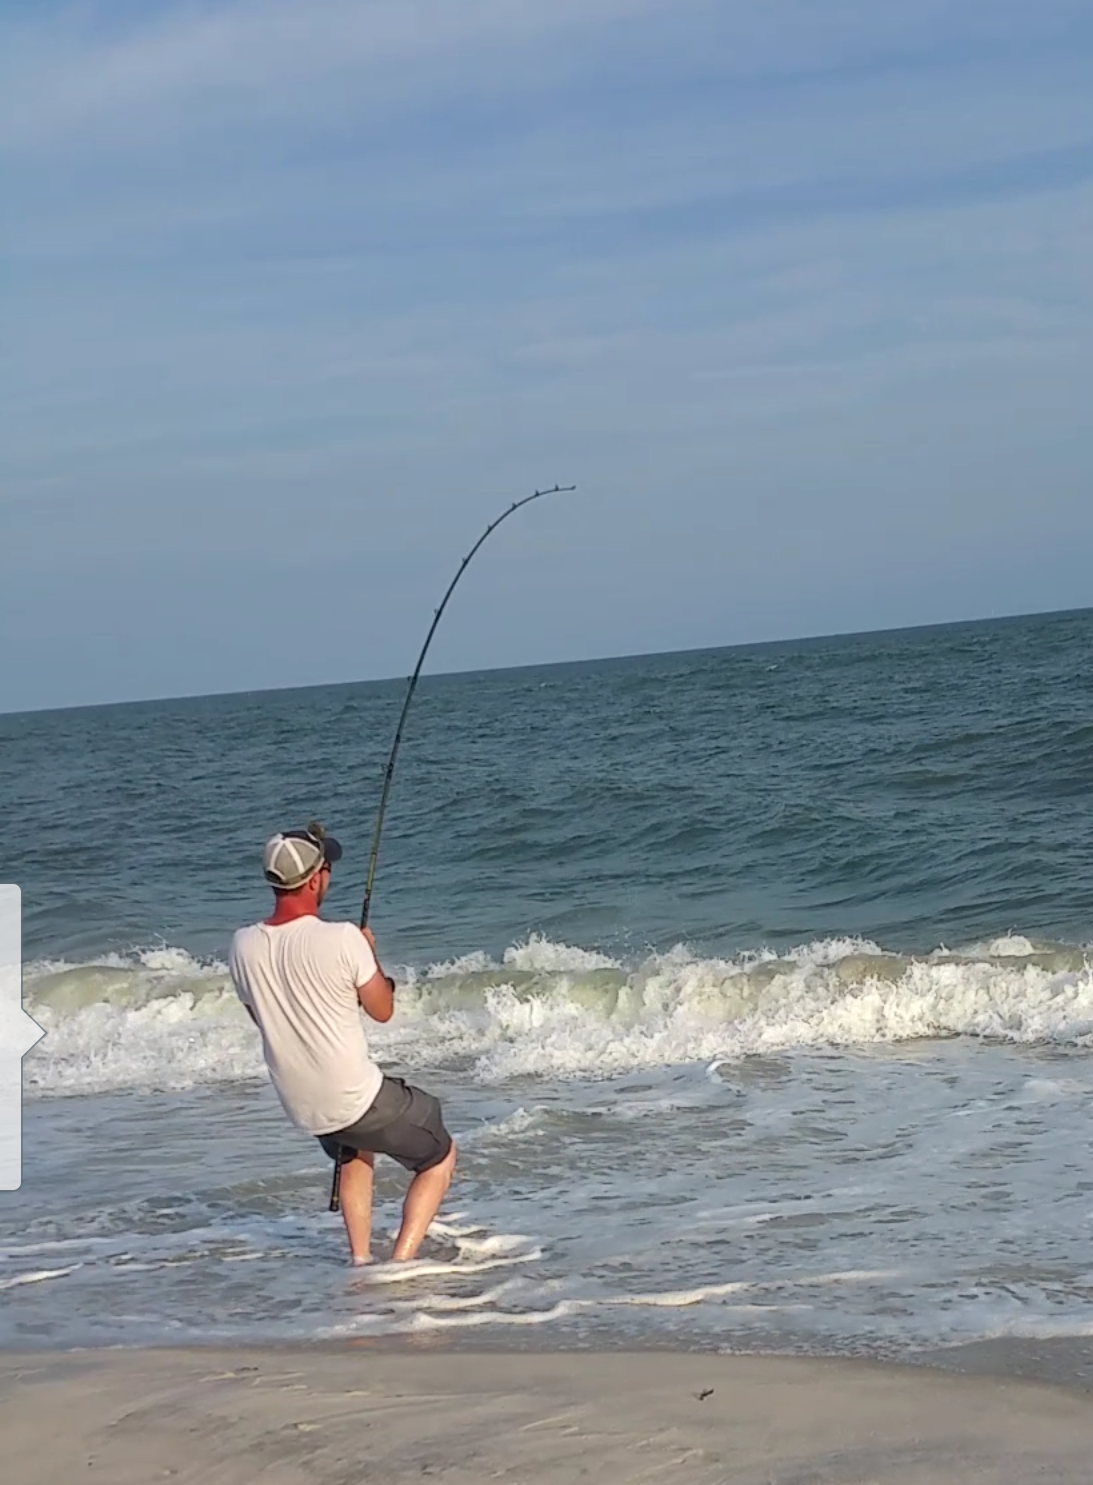 Which Of These Rods For Small Medium Sharks From Surf Main Forum Surftalk